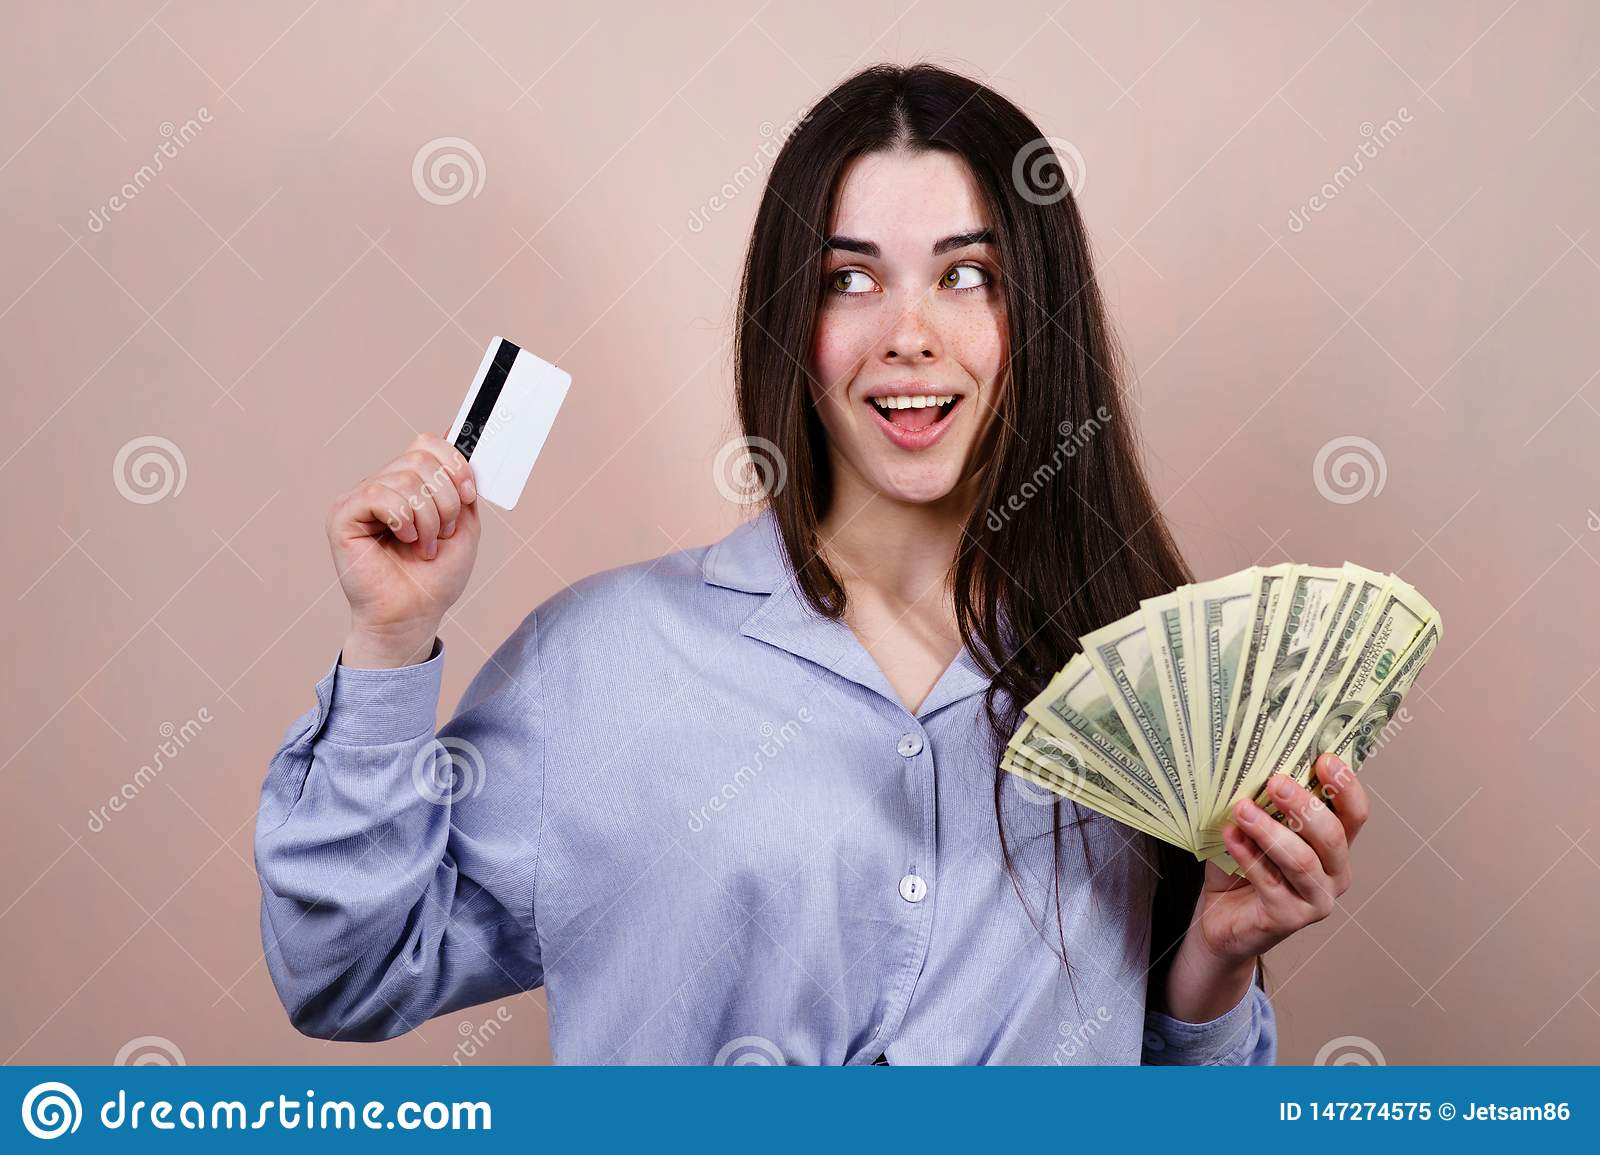 Happy woman with credit card and dollar bills